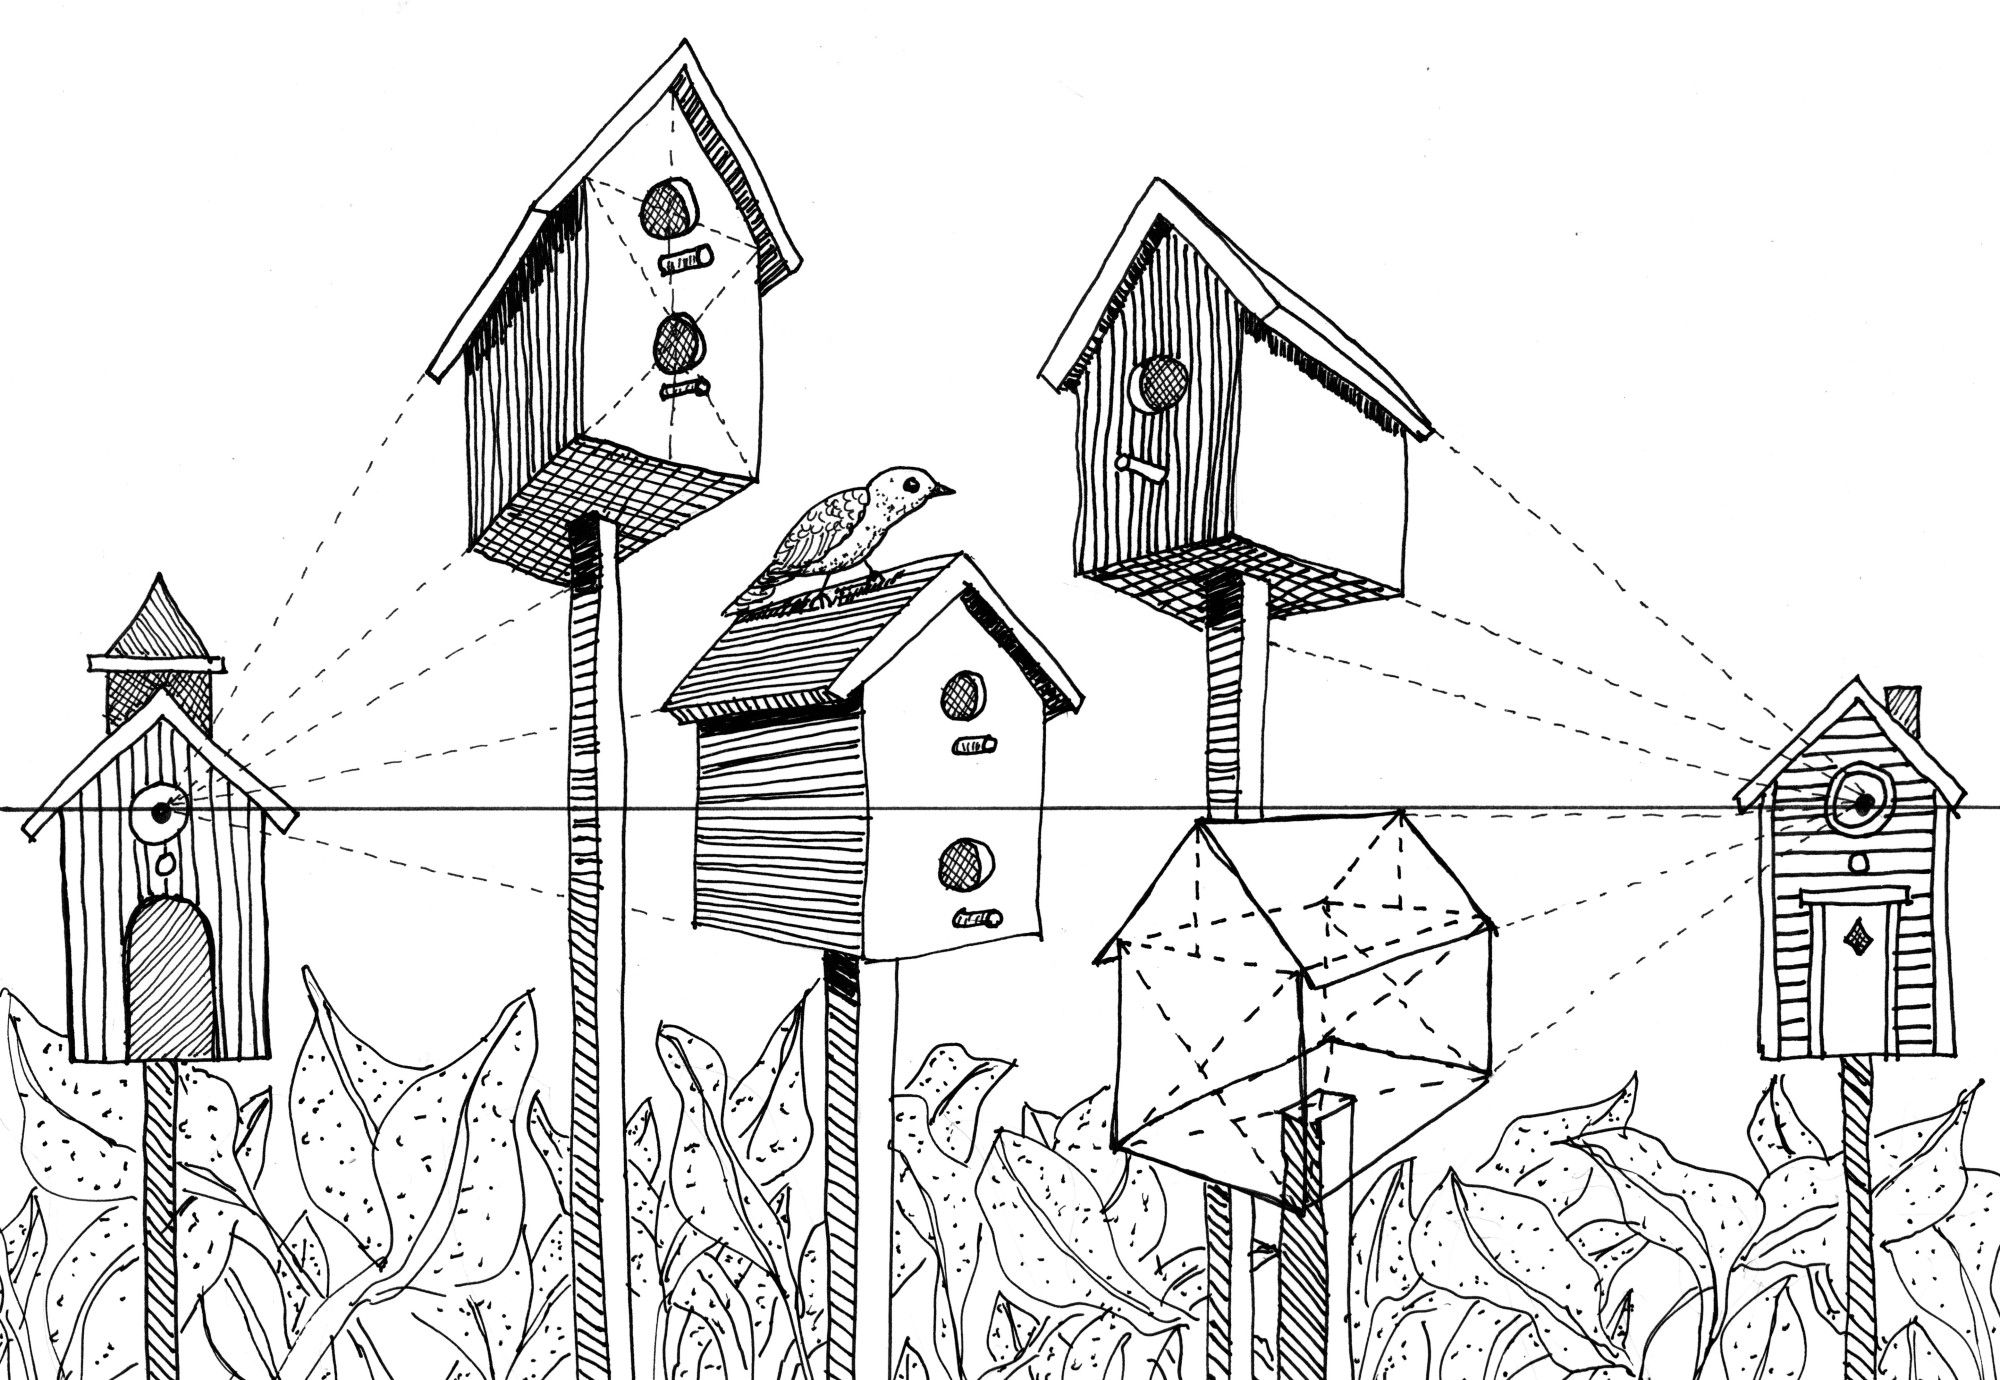 Various level bird houses to demonstrate how height changes angle of perspective